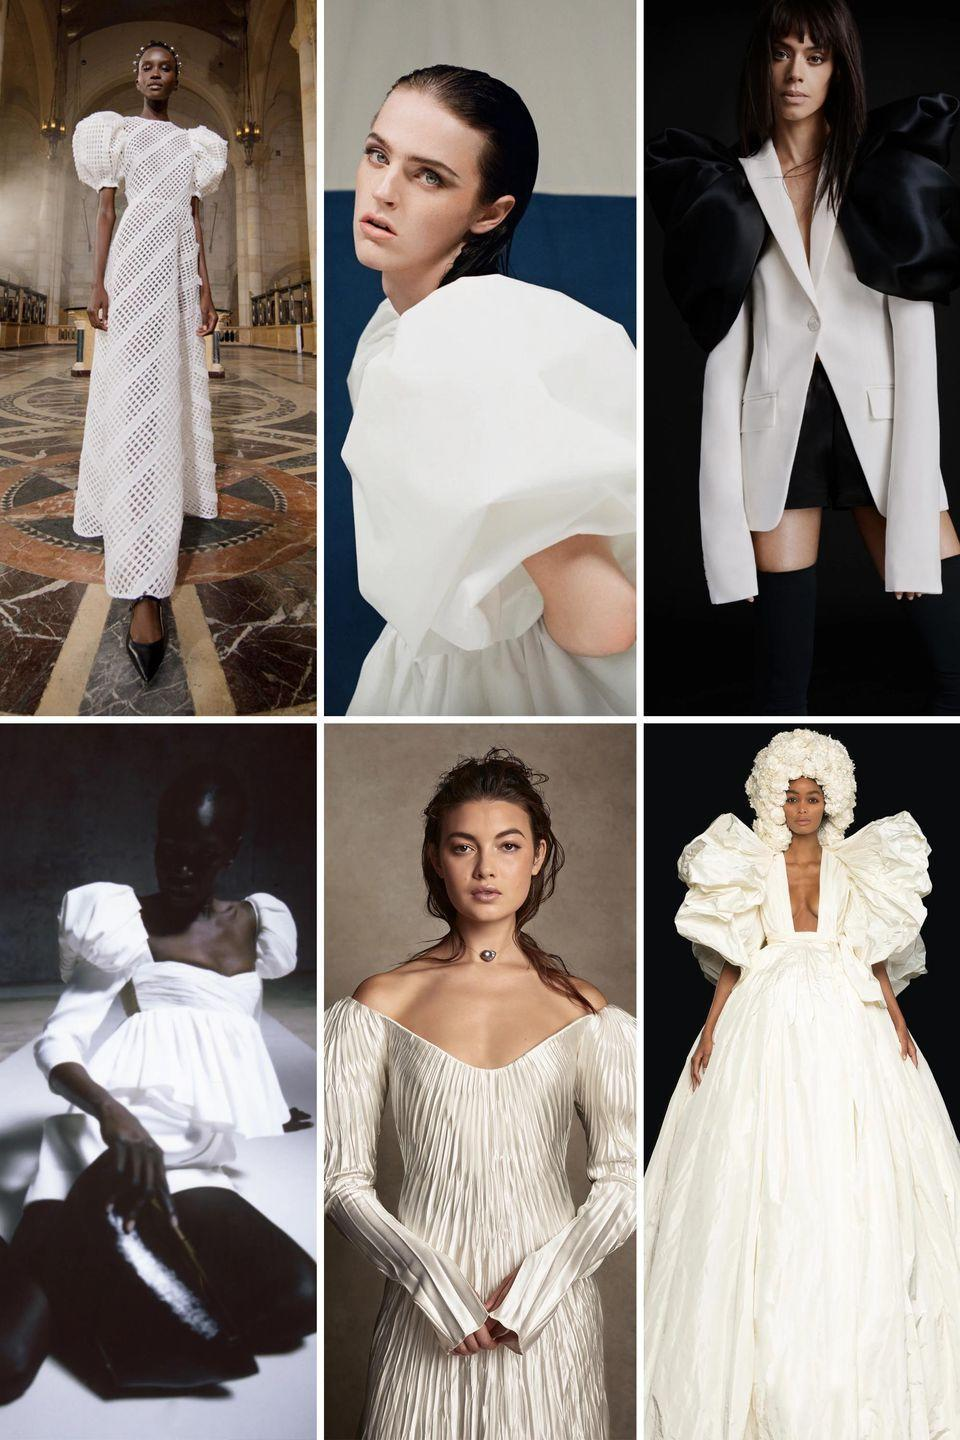 <p>The '80s have been making a comeback on runways for seasons—and bold shoulders are just another nod to fashion's most daring decade. </p><p>Puff sleeves give the body a postural presence, while blouson sleeves feel poetic and romantic, with an edge. Bold shoulder details work double duty, feeling dreamy while offering the daring touch that thinks outside the strapless, off-shoulder, and plunging neckline standards.</p><p><em>Clockwise from left: Carolina Herrera Spring 2021; Christopher John Rogers Spring 2021; Vera Wang Fall 2021; Khaite Spring 2021; Danielle Frankel Fall 2020, Valentino Fall 2020 Haute Couture.</em></p>